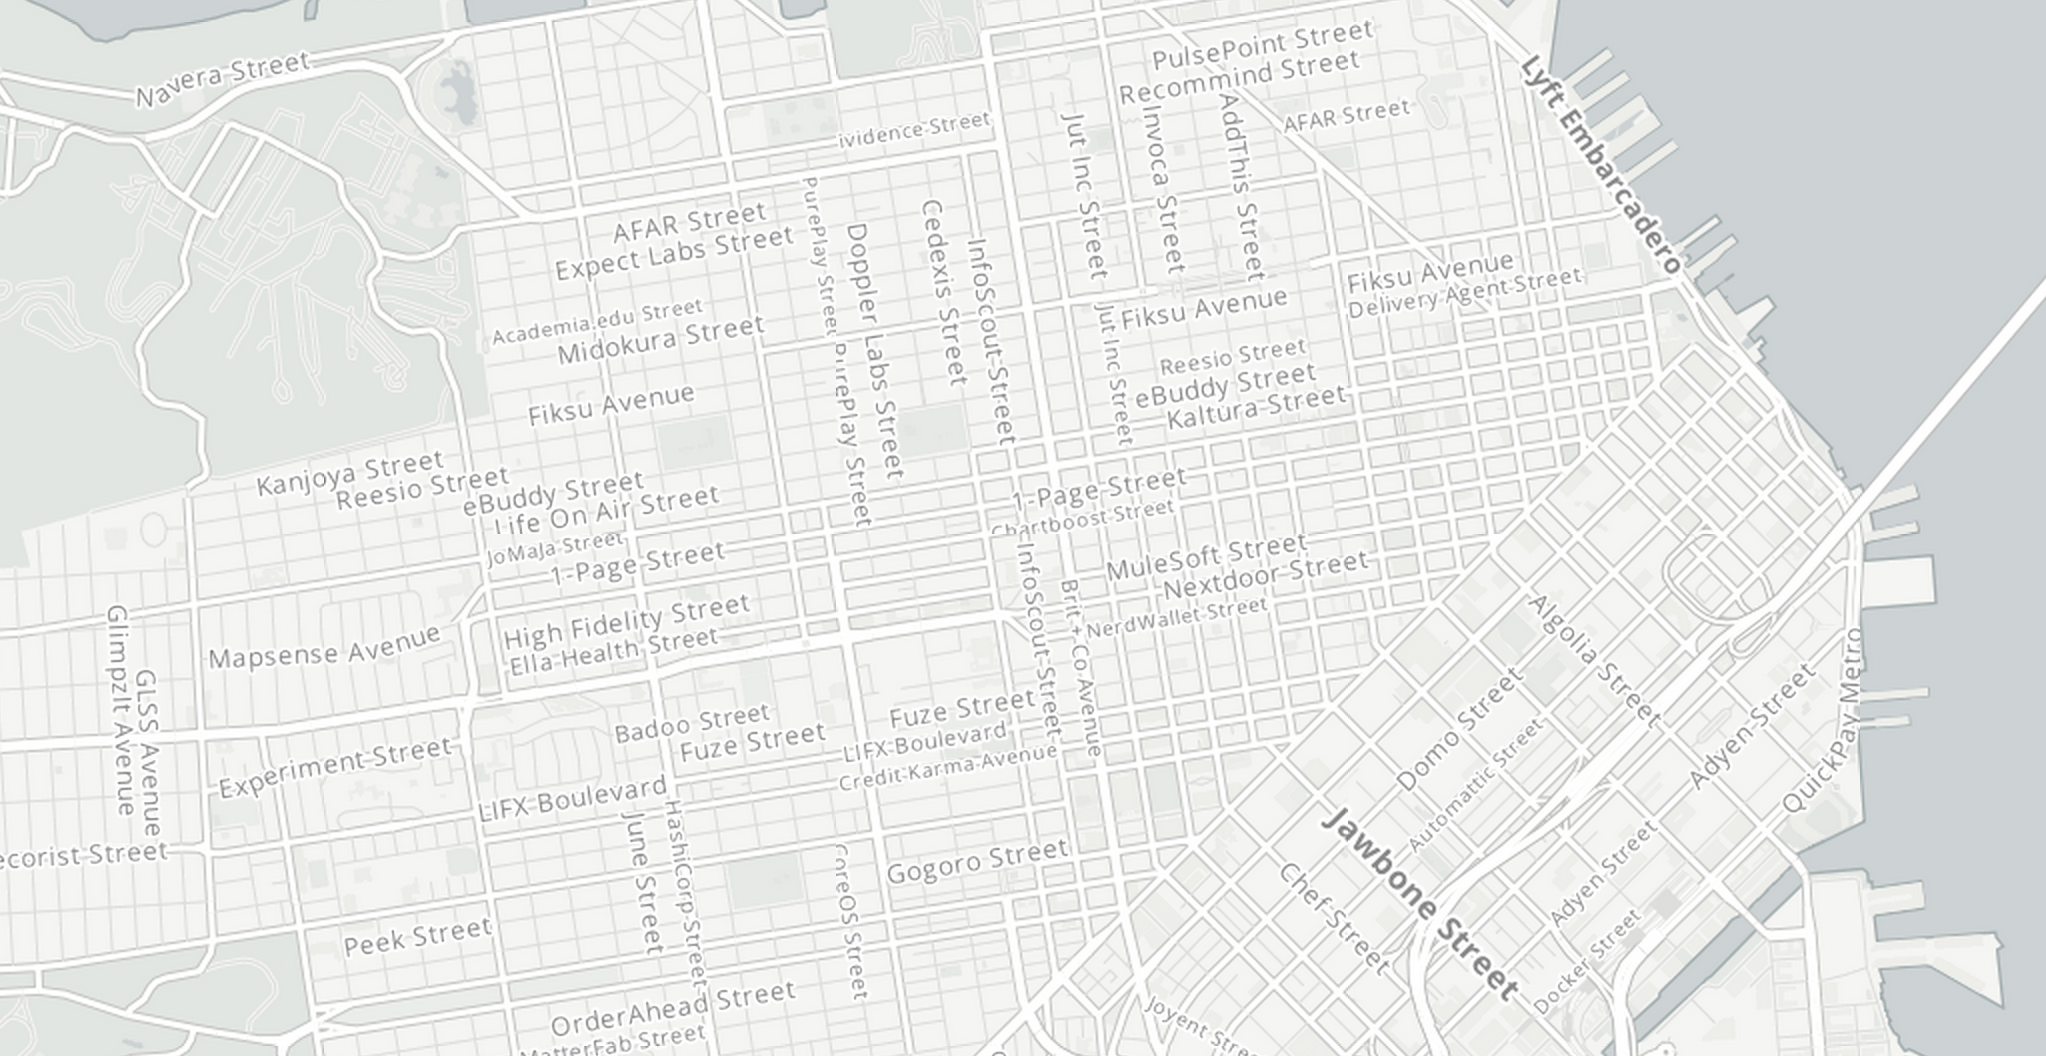 RT @TheNextWeb: See San Francisco reimagined as a startup map http://t.co/Tv46LAegSy http://t.co/Wlsci2jF2A